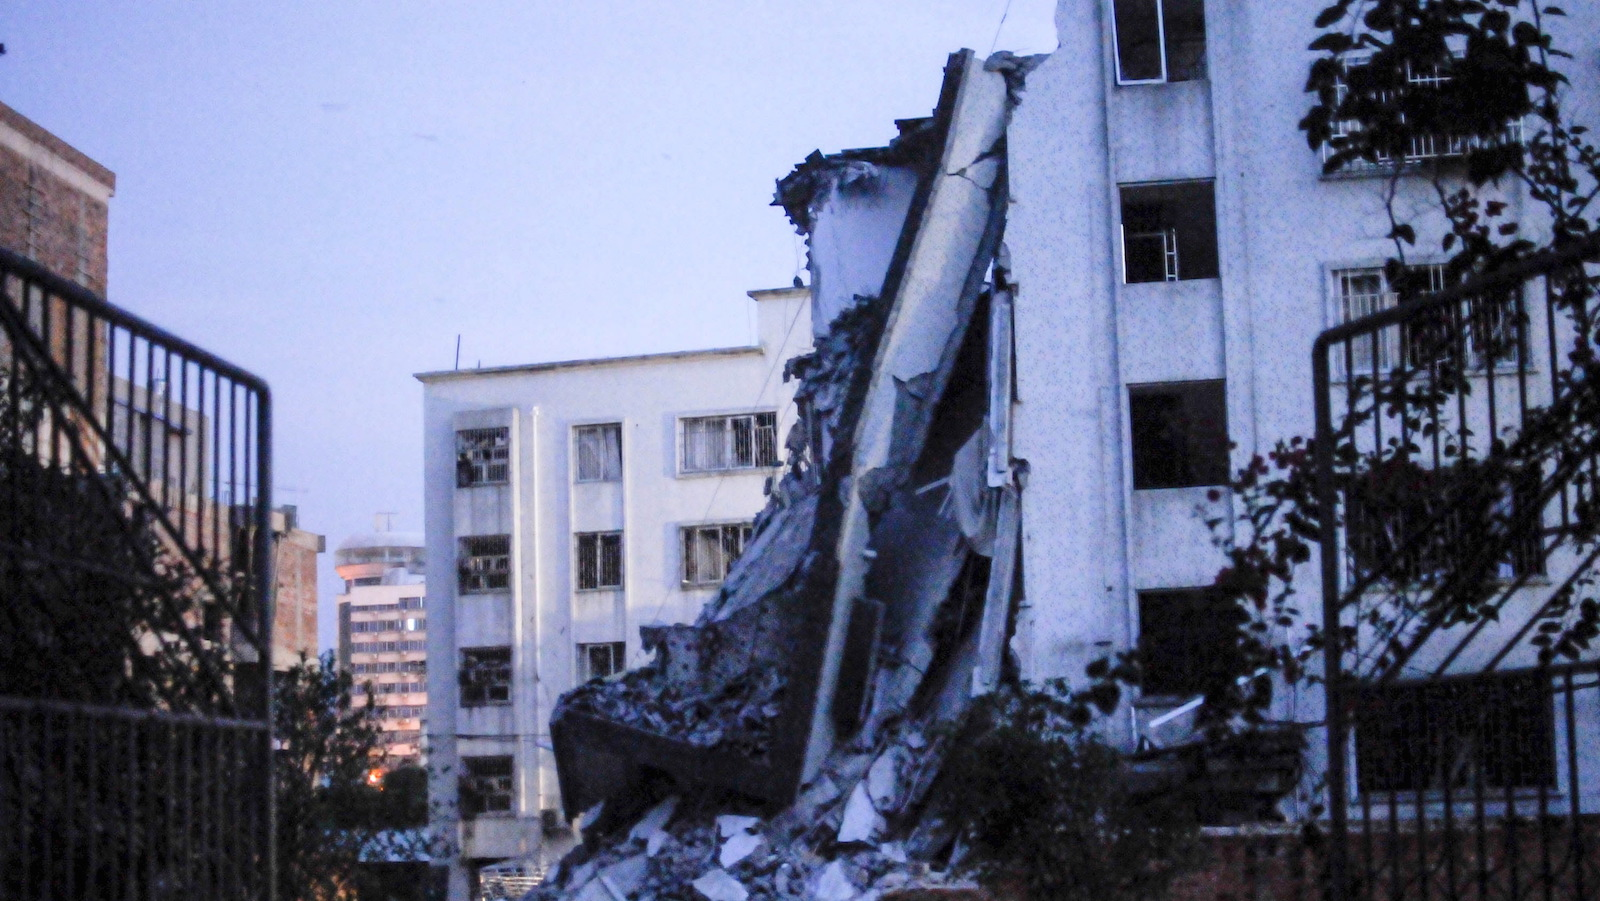 A damaged building is seen after explosions hit Liucheng county, Guangxi Zhuang Autonomous Region, China, September 30, 2015. A series of package bombs exploded on Wednesday in China's southwestern city of Liuzhou, killing at least three people, state television said, publishing images of a collapsed building, a plume of smoke and streets strewn with rubble.